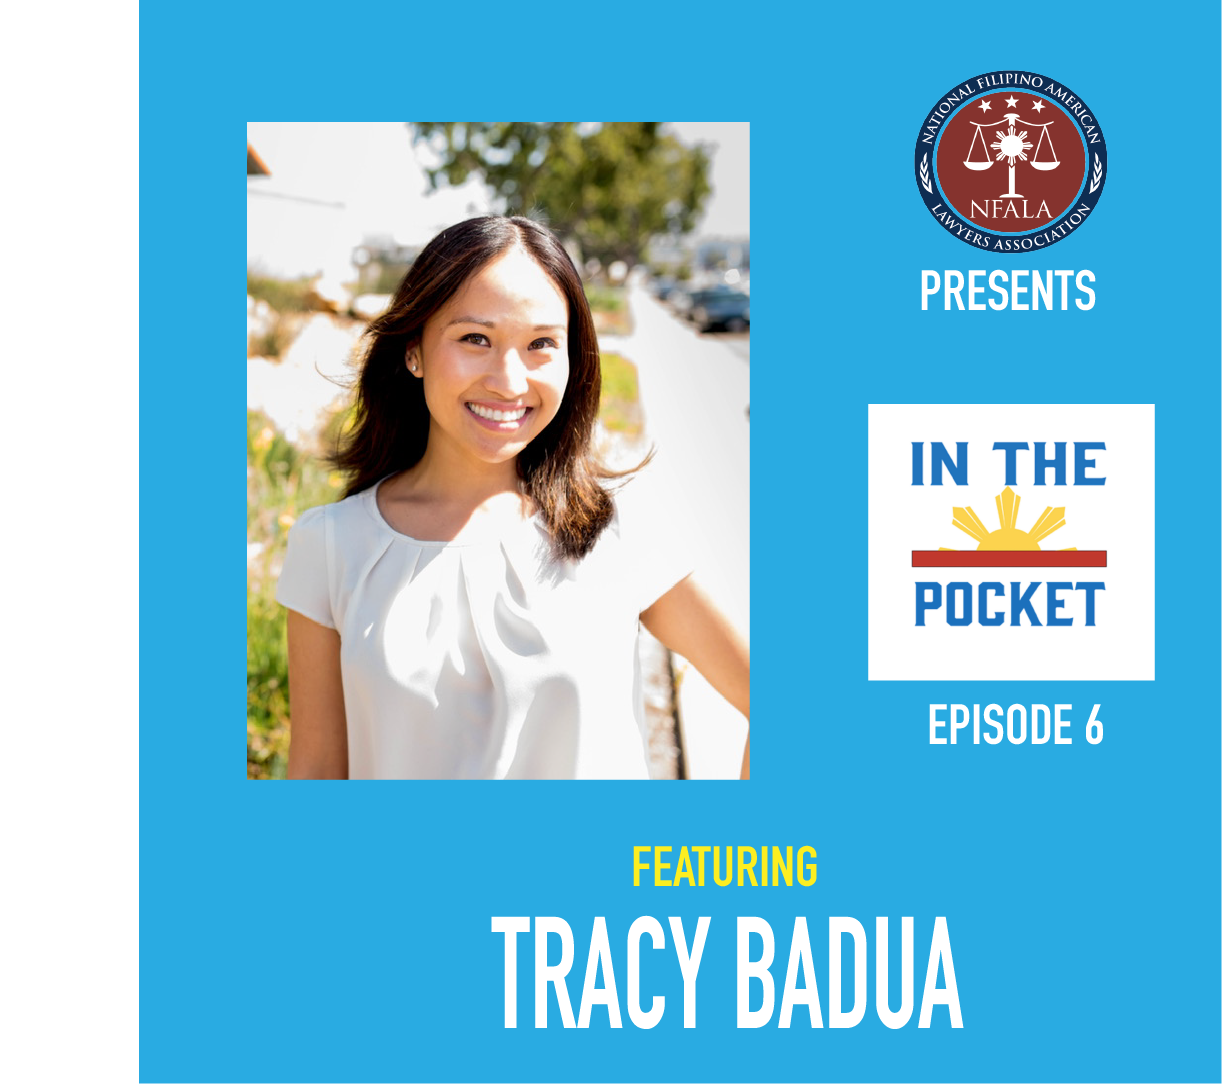 Episode 6 - Tracy Badua